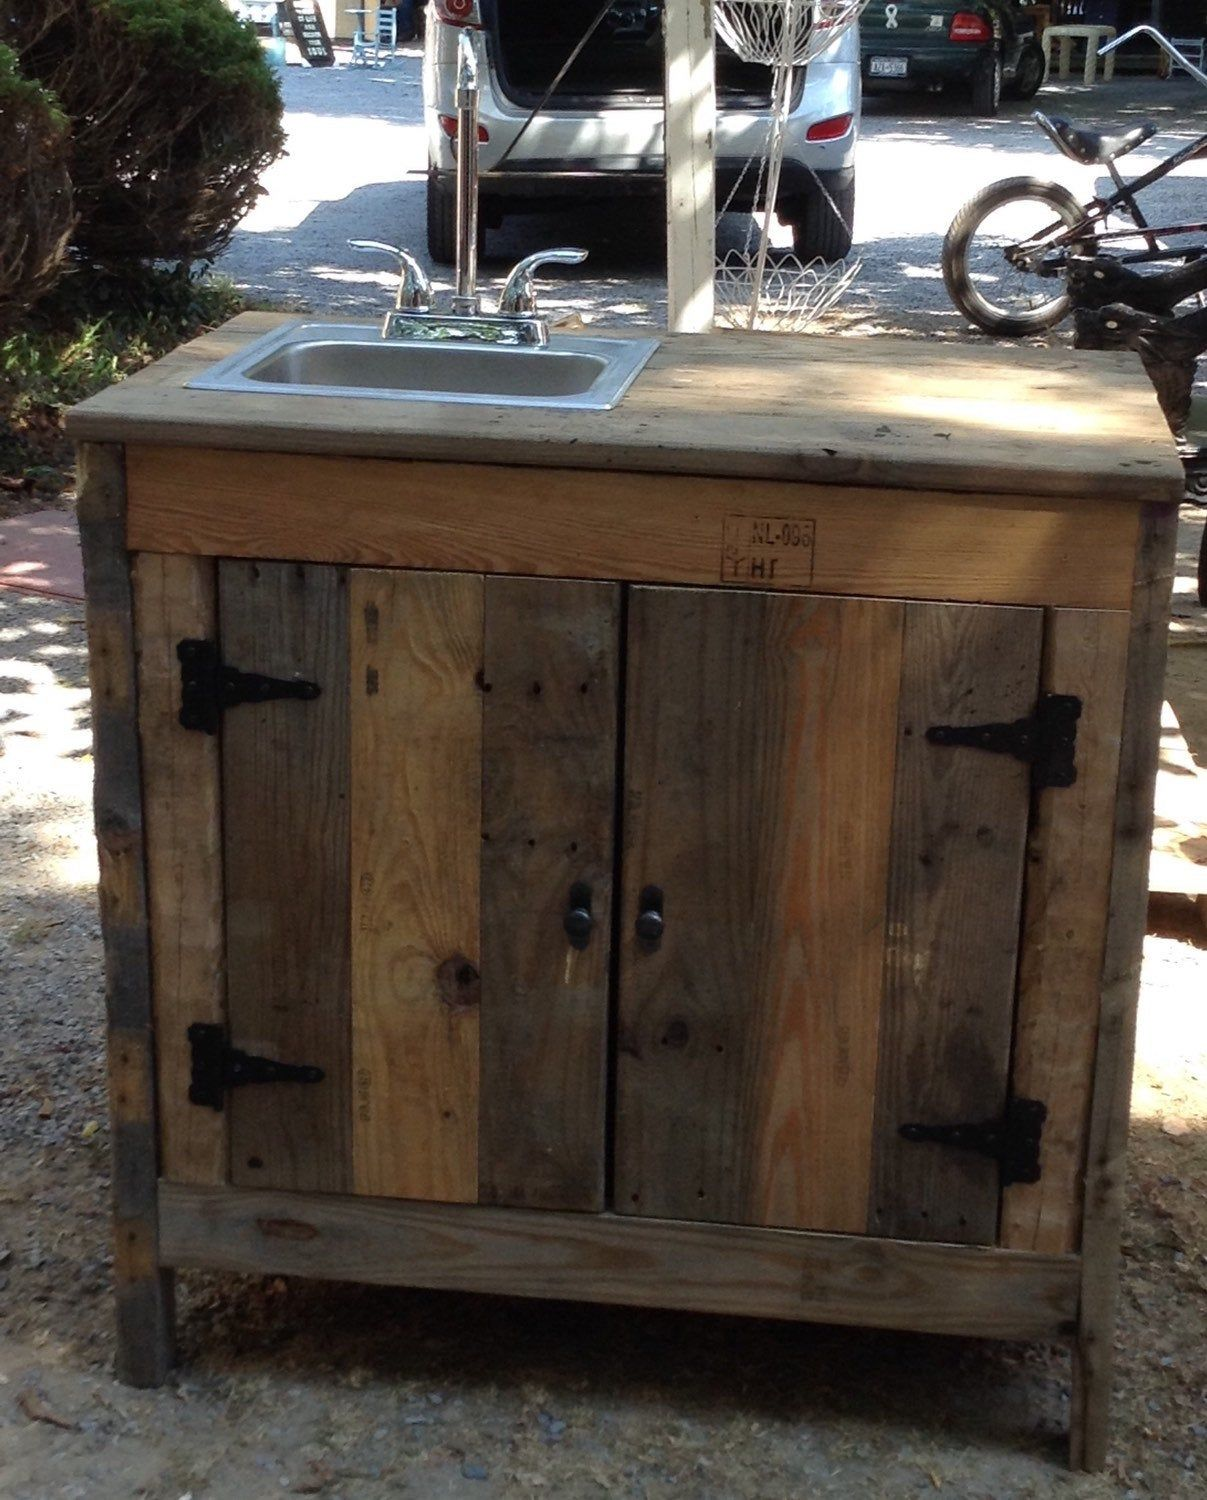 Sink Cabinet For Outdoor Entertainment Area Kitchen Or Bathroom